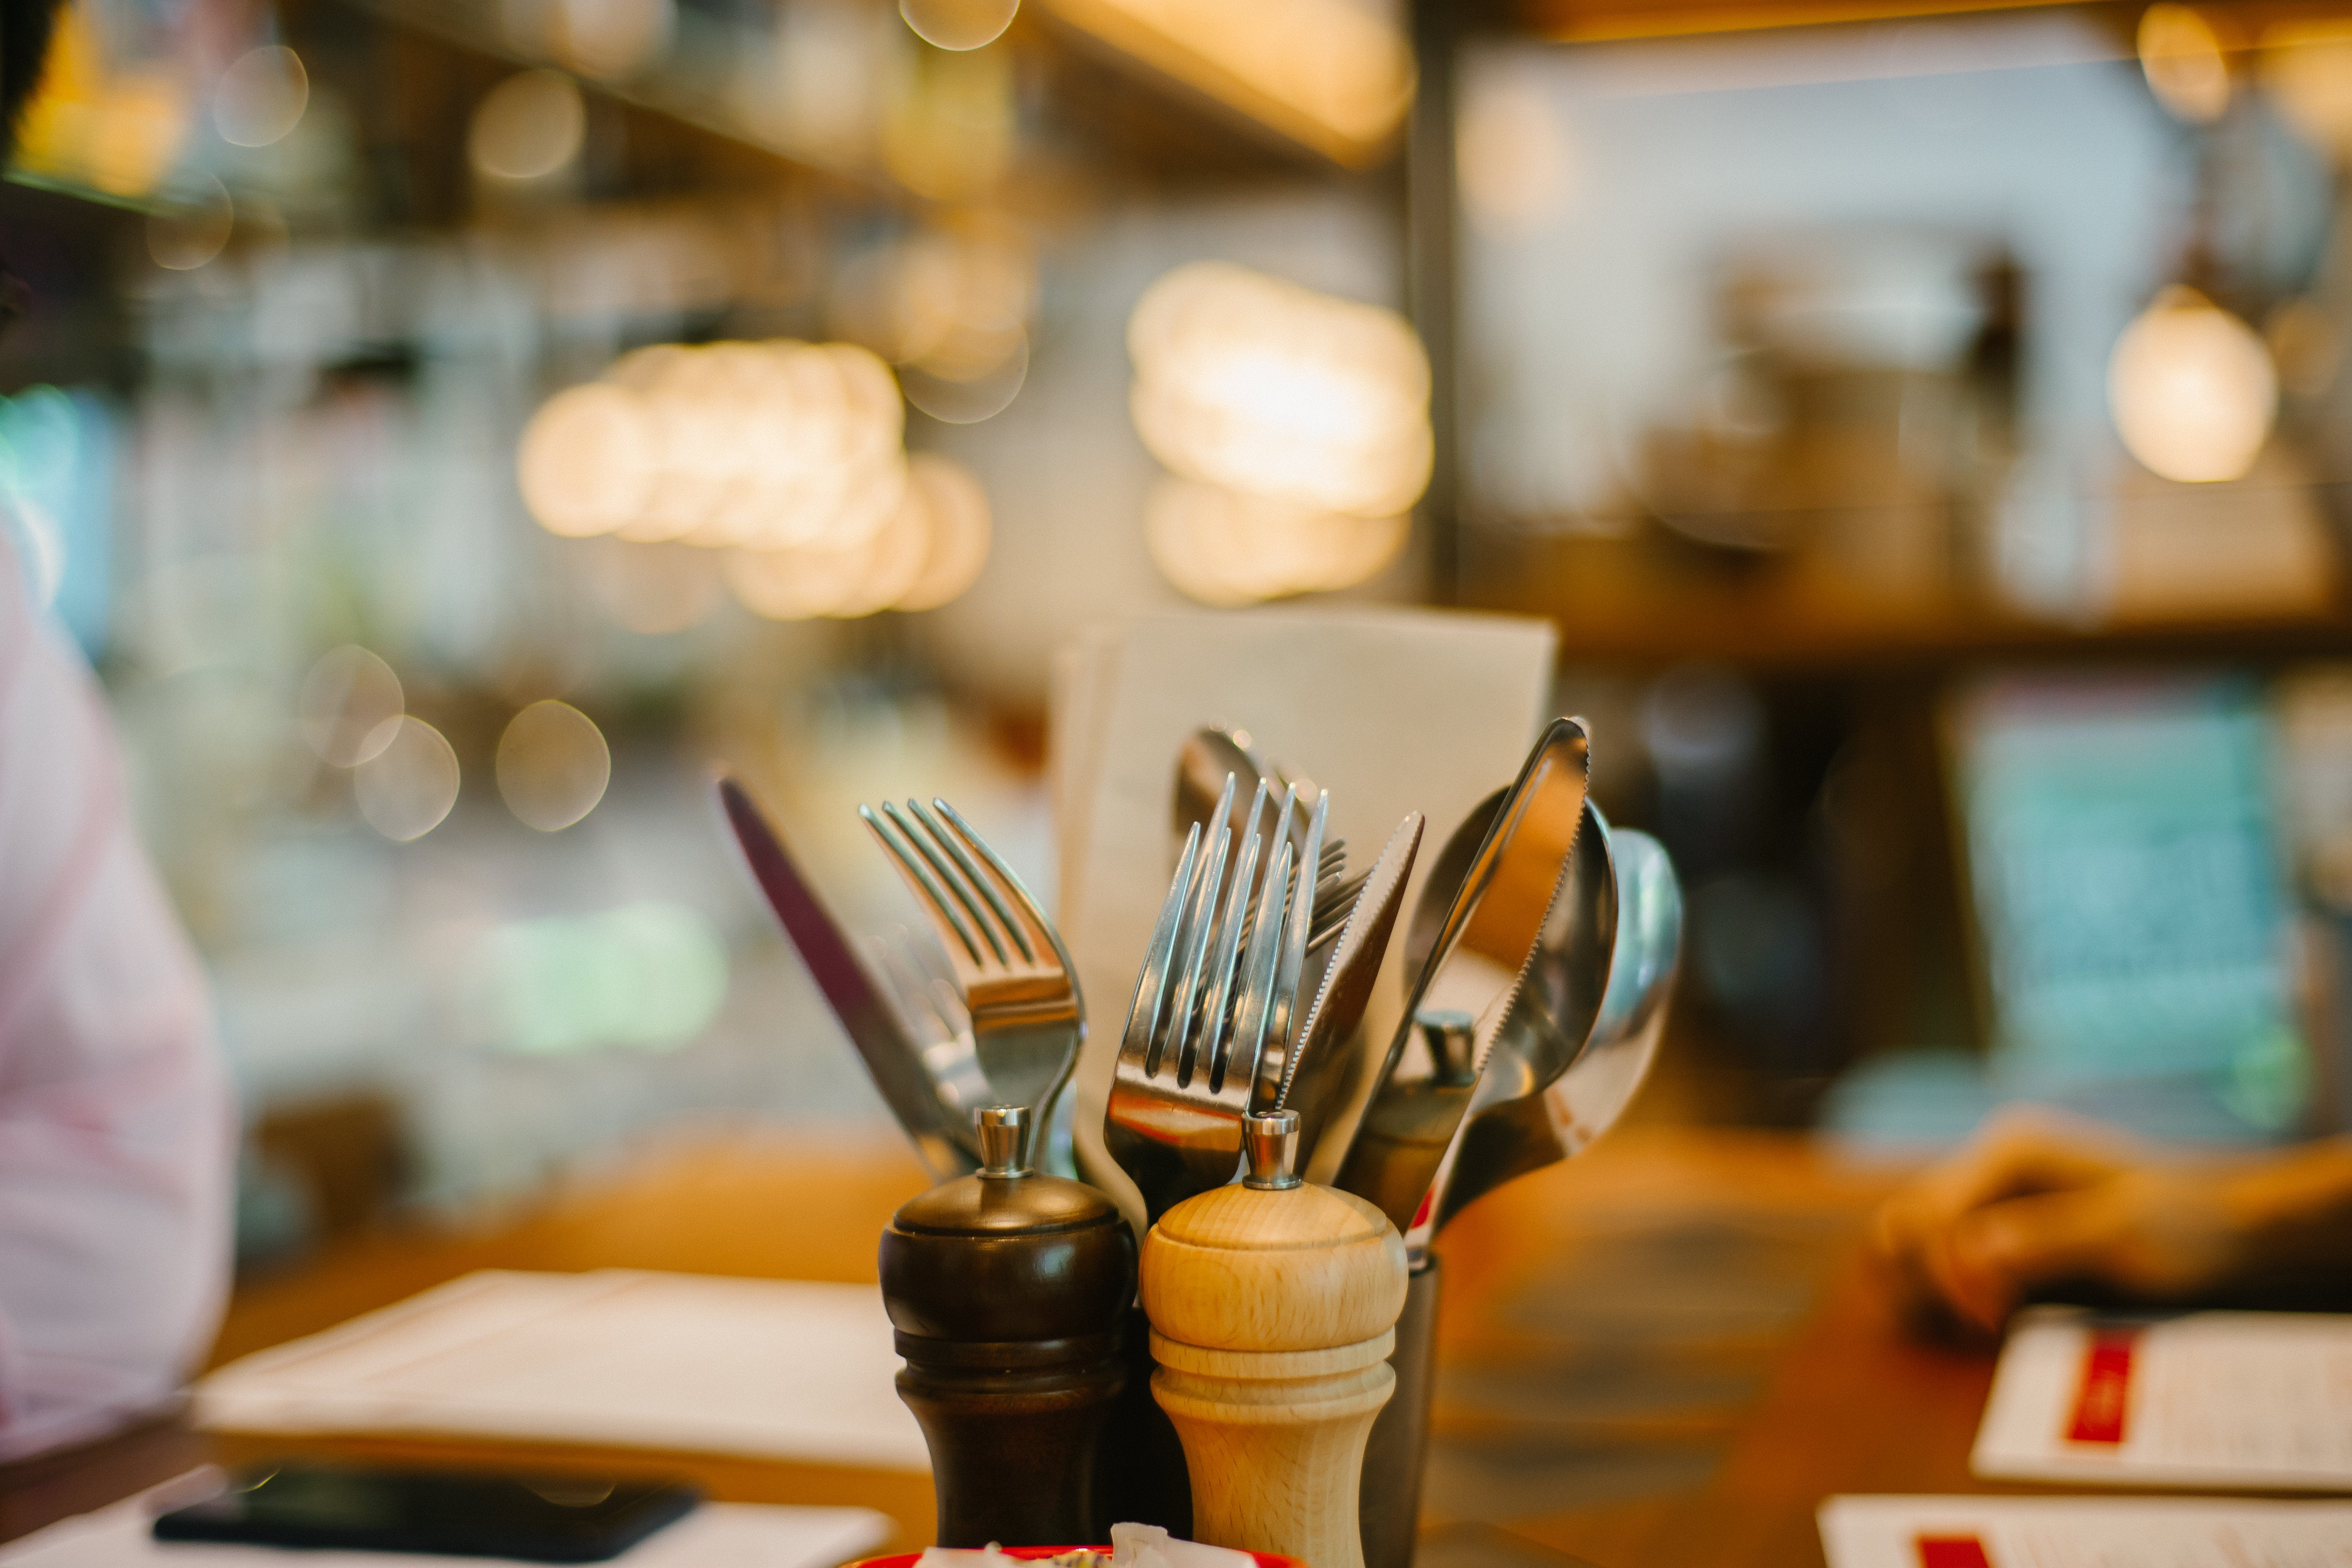 Selective Focus Photography Of Utensils On Table